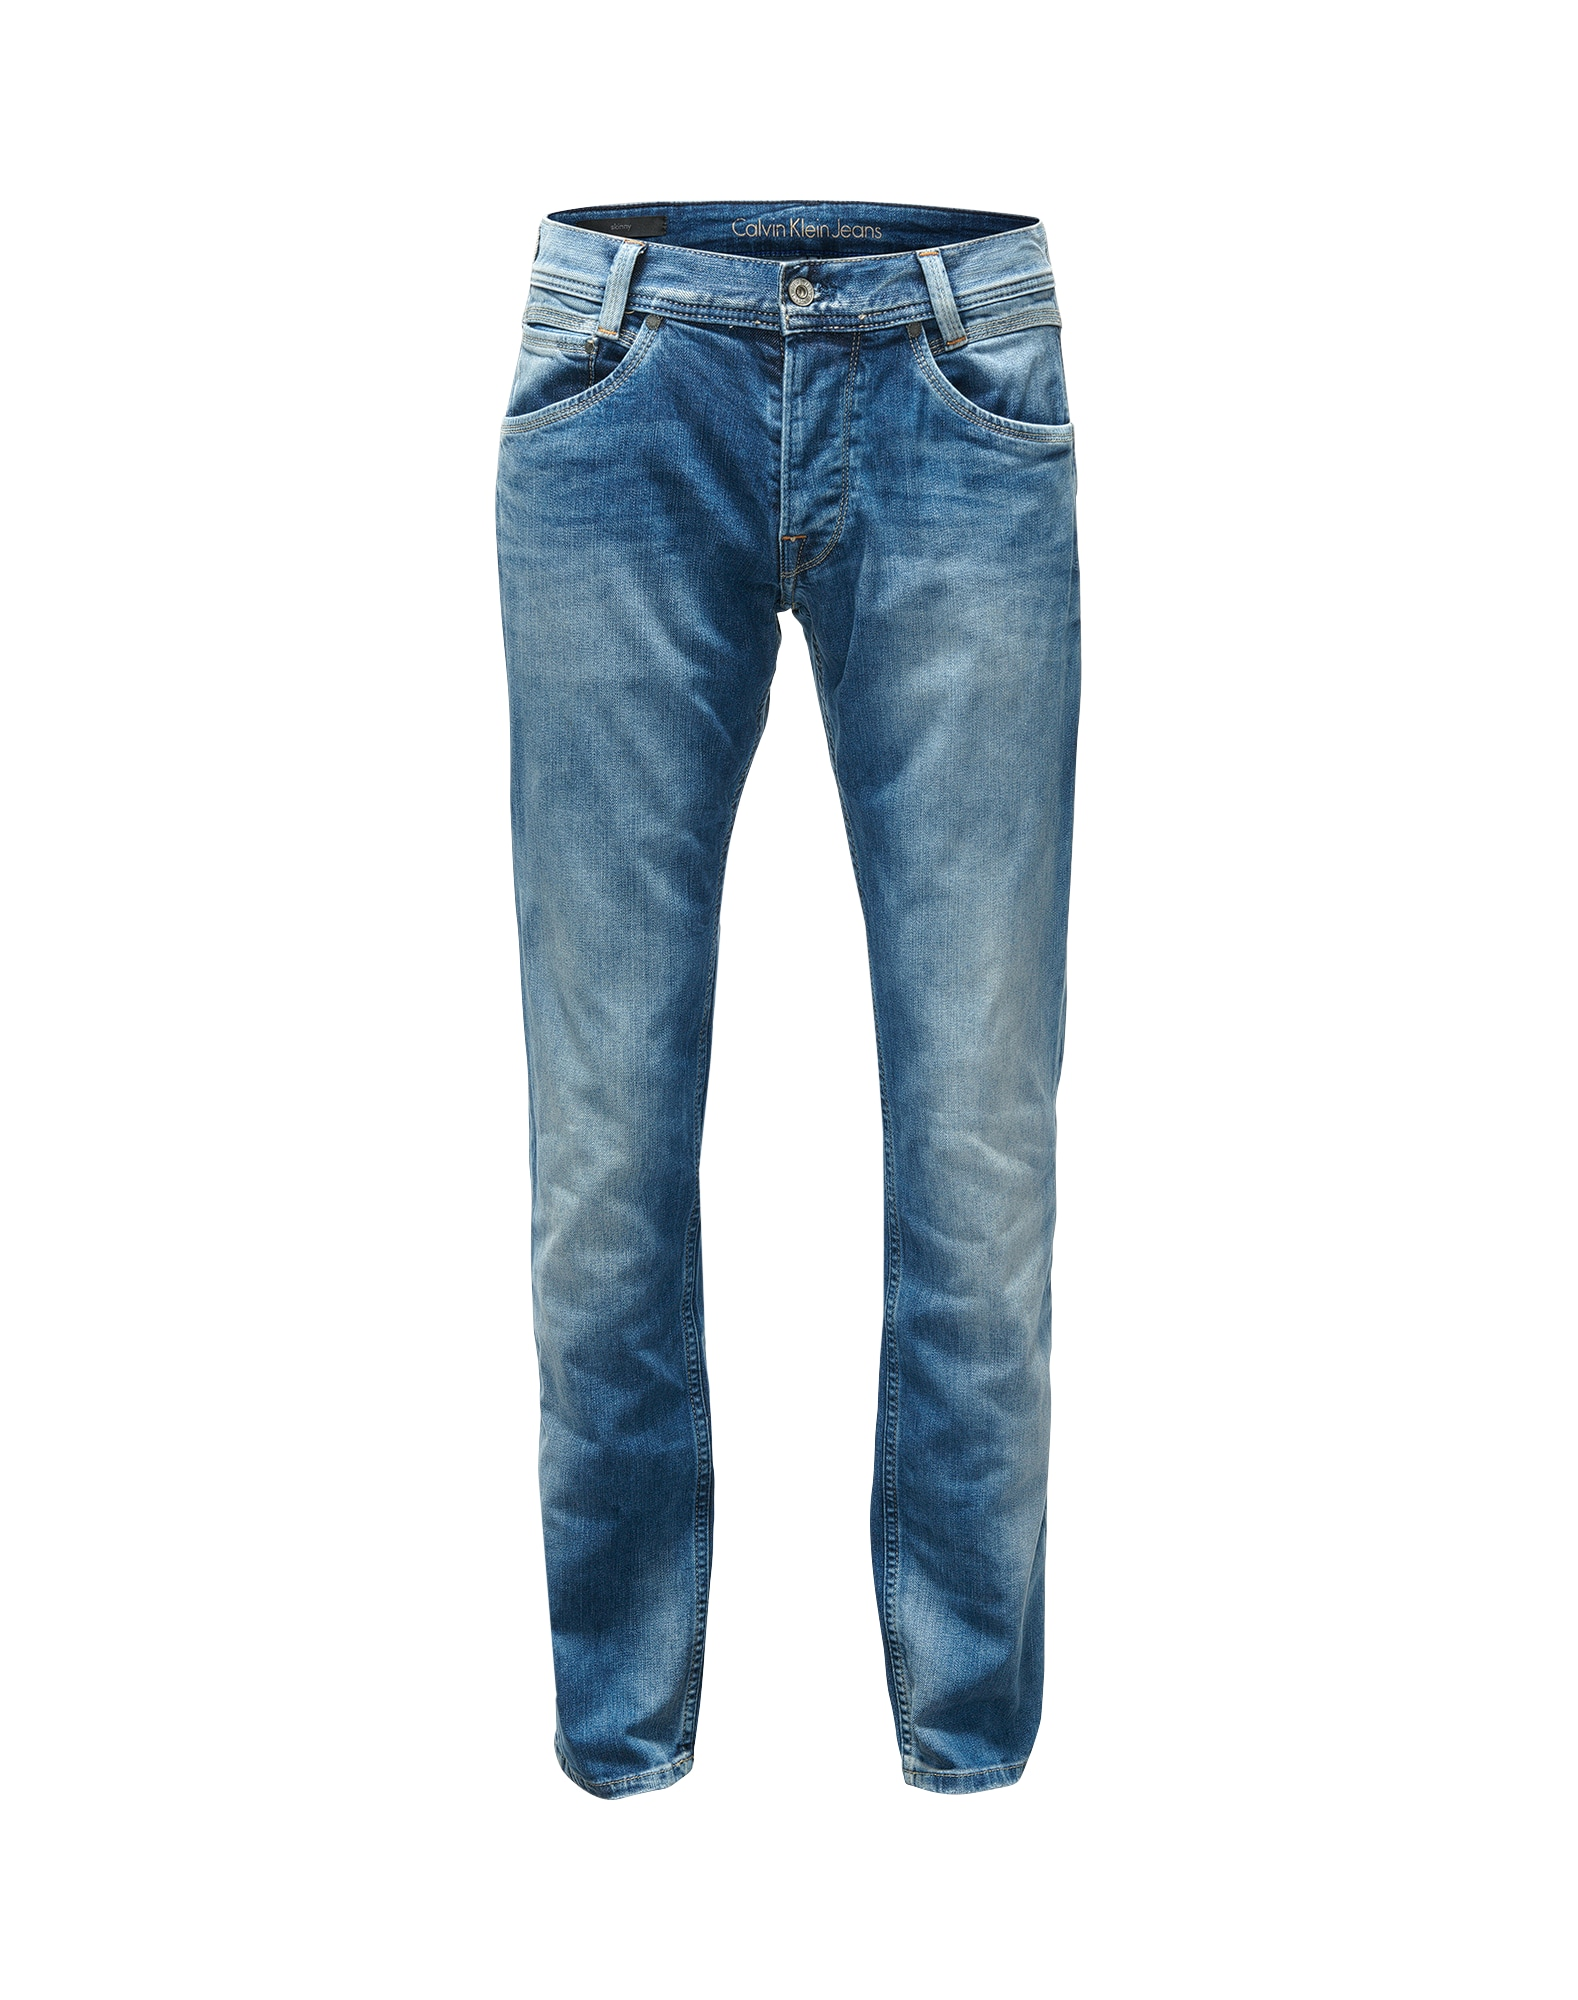 Pepe Jeans Heren Jeans Spike blauw denim